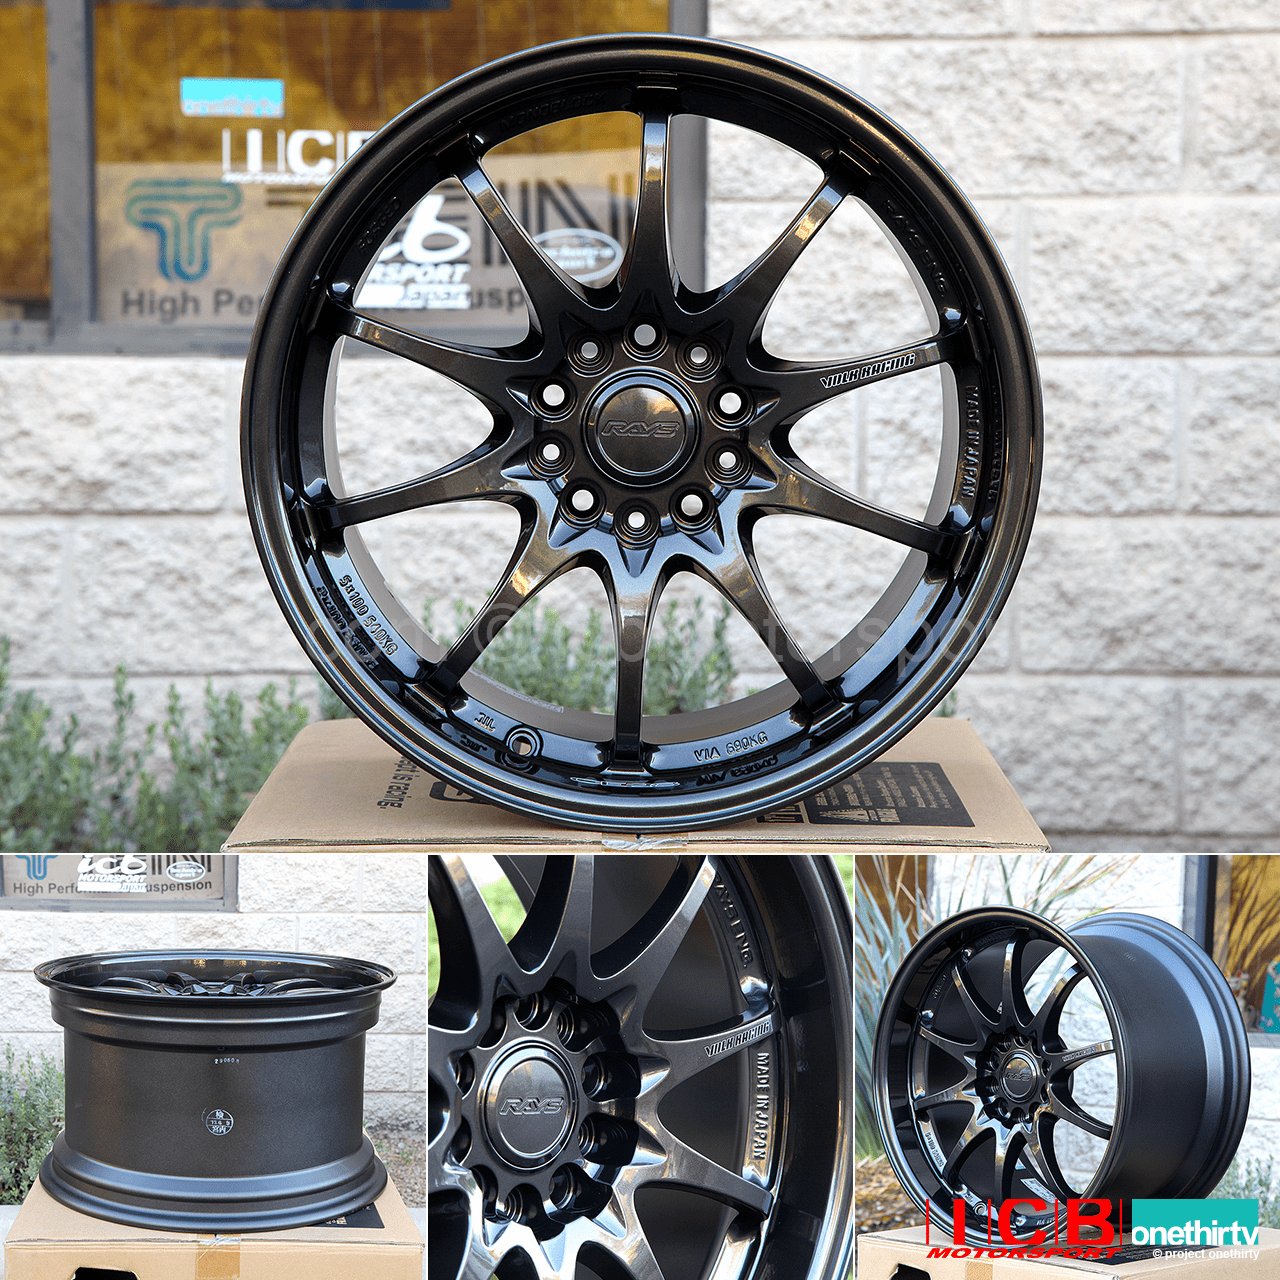 Rays Volk Racing CE28N Diamond Black Wheels Set 5X114.3 17X10 +50 Offset Concave Face BBK